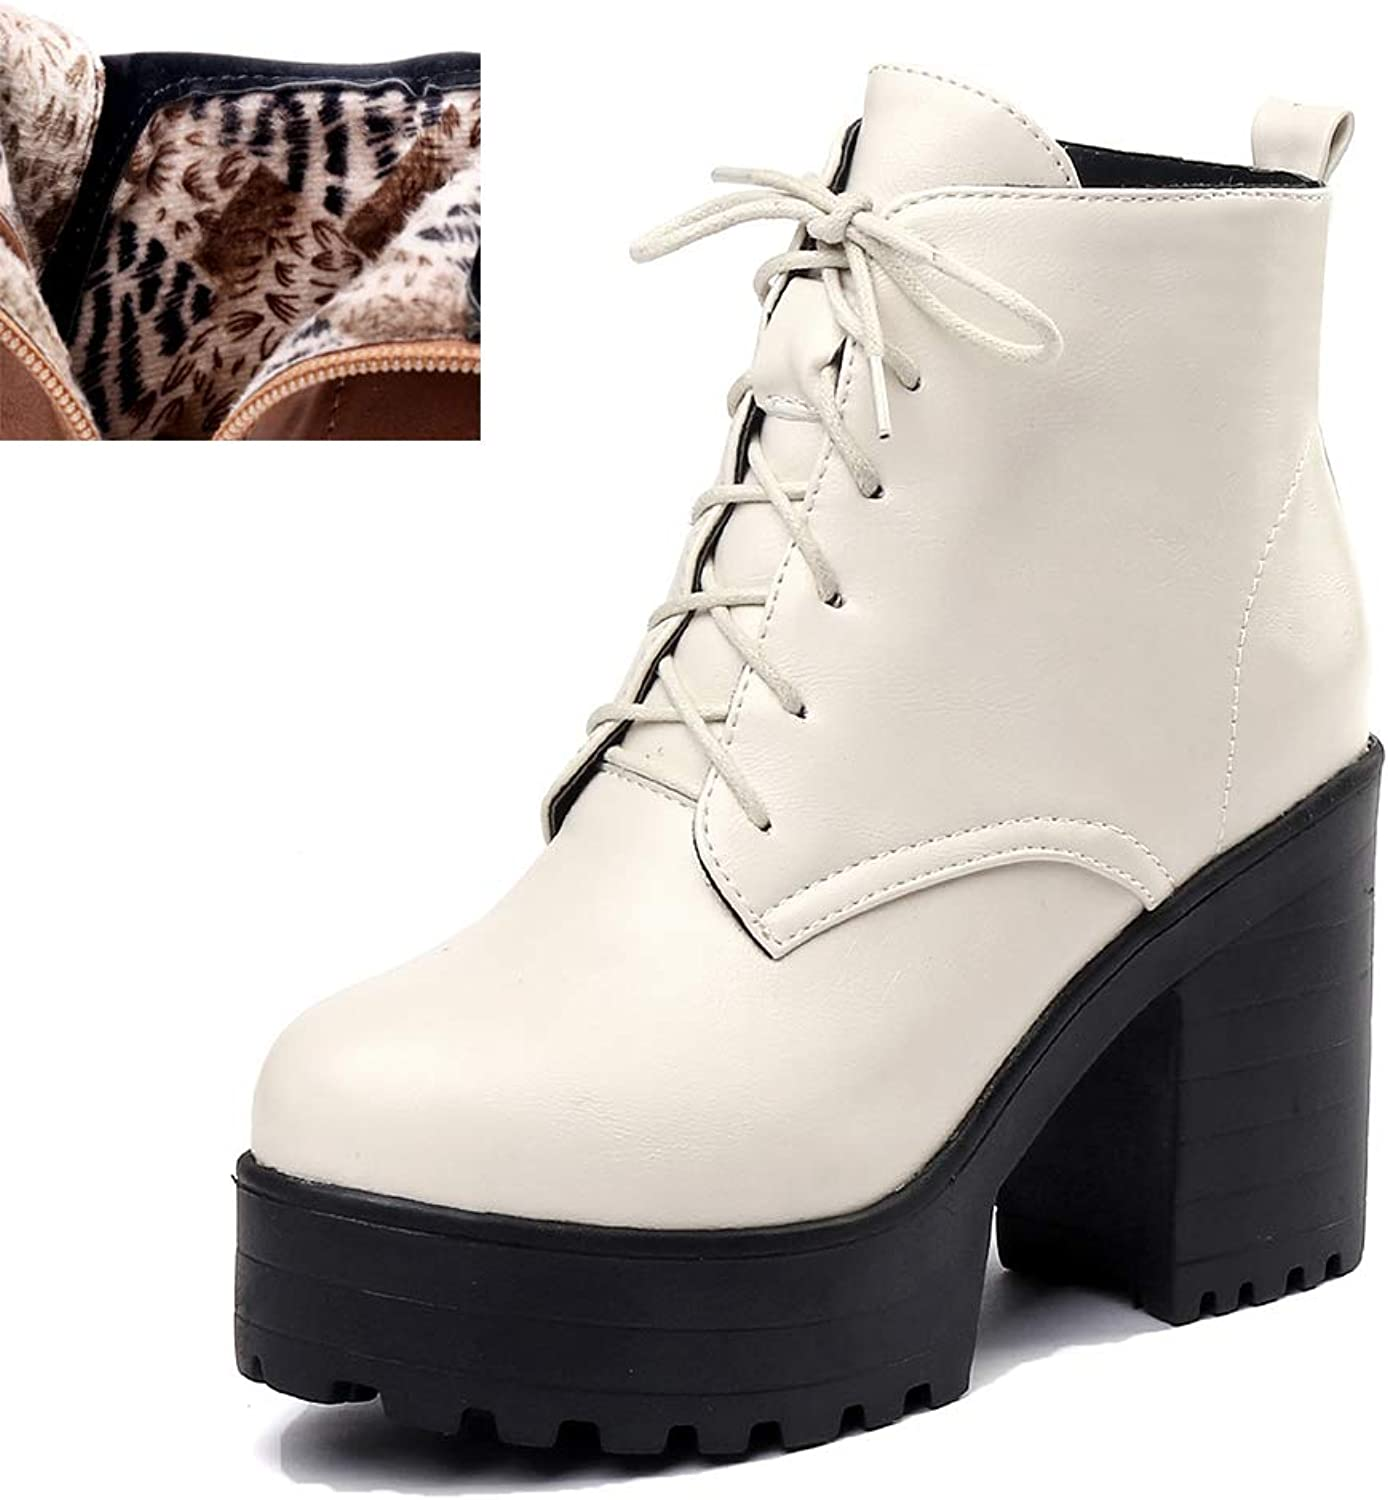 Winter Women Ankle High Heel Women Boots Black Warm Fur Thick Platform Lace Up Casual shoes